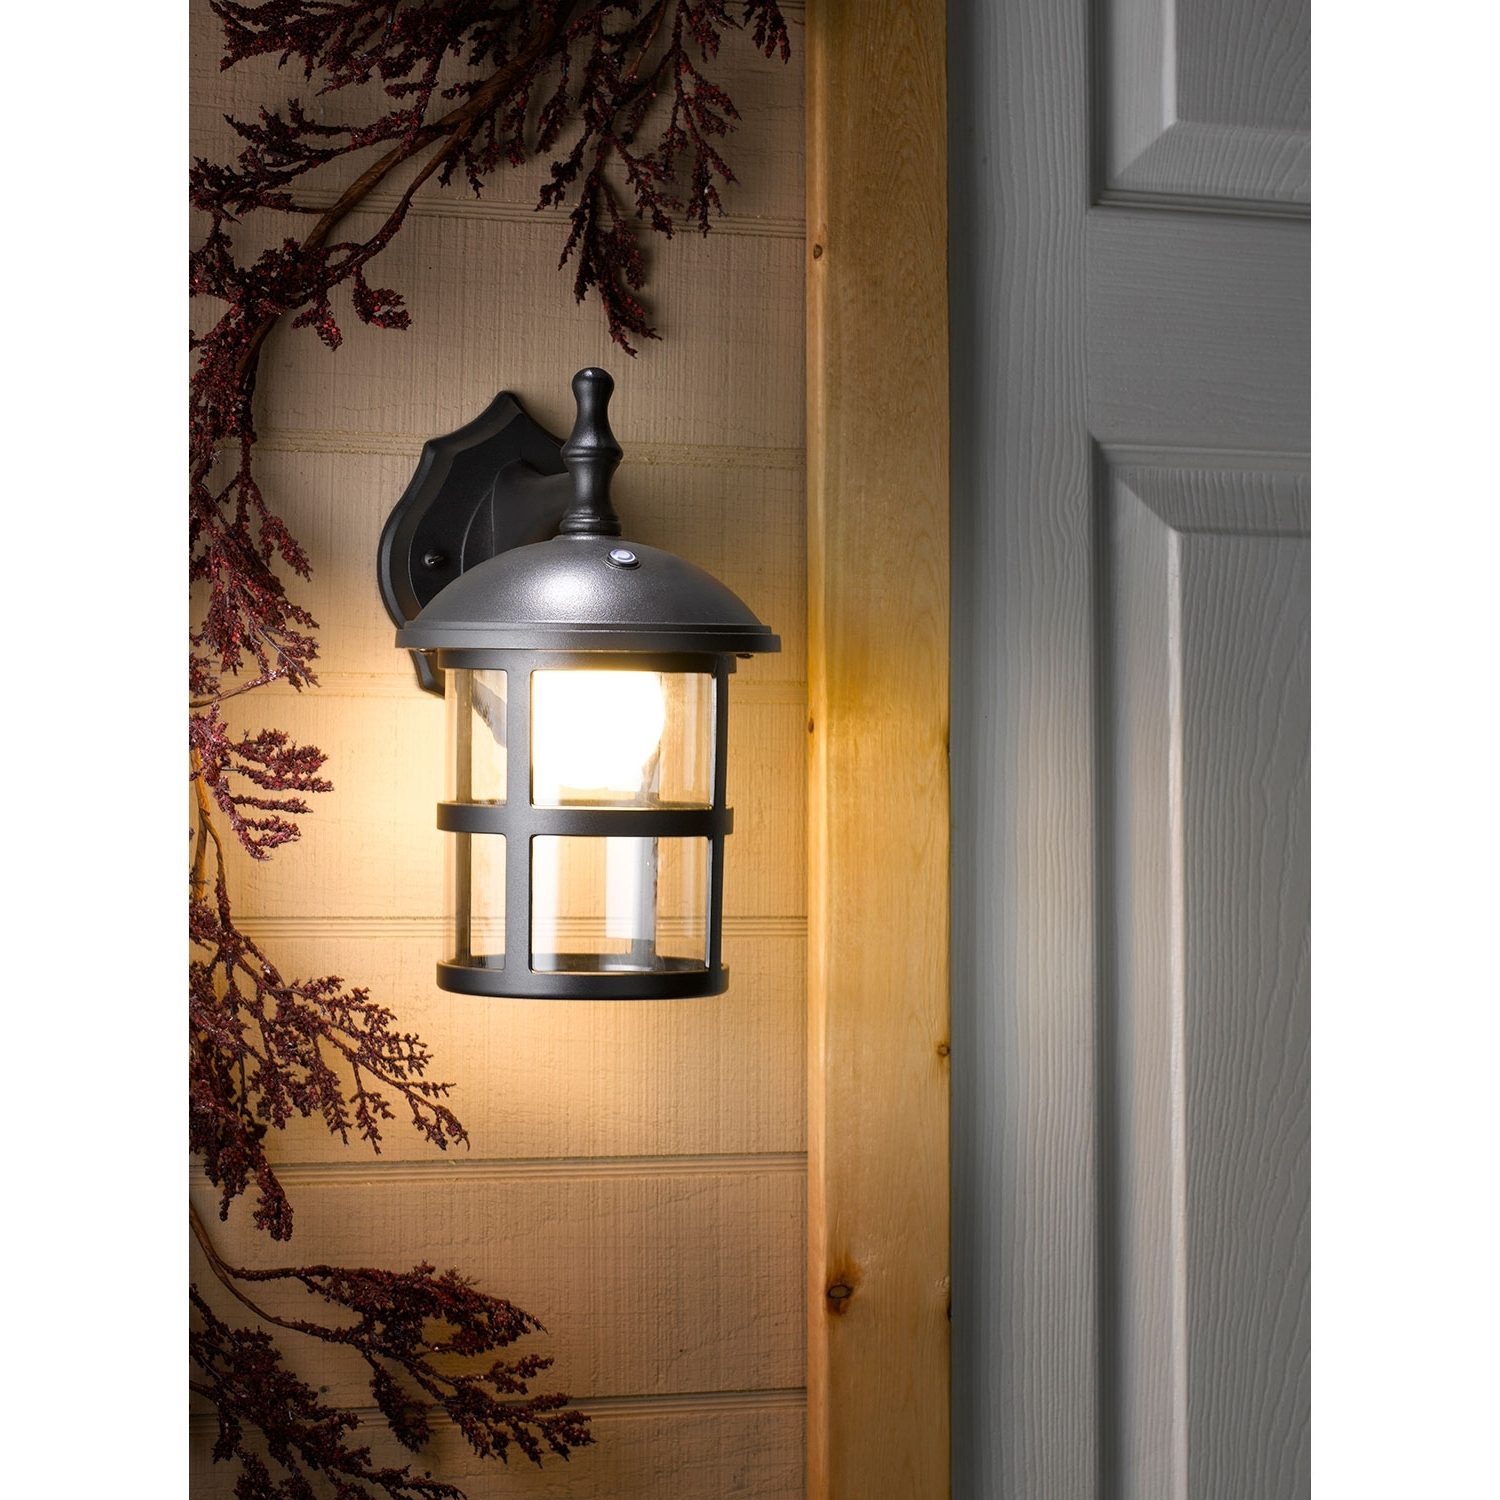 Honeywell Ss0201 08 Led Outdoor Wall Mount Lantern Light, 3000K, 400 With Regard To Best And Newest Outdoor Wall Lantern Lights (View 15 of 20)